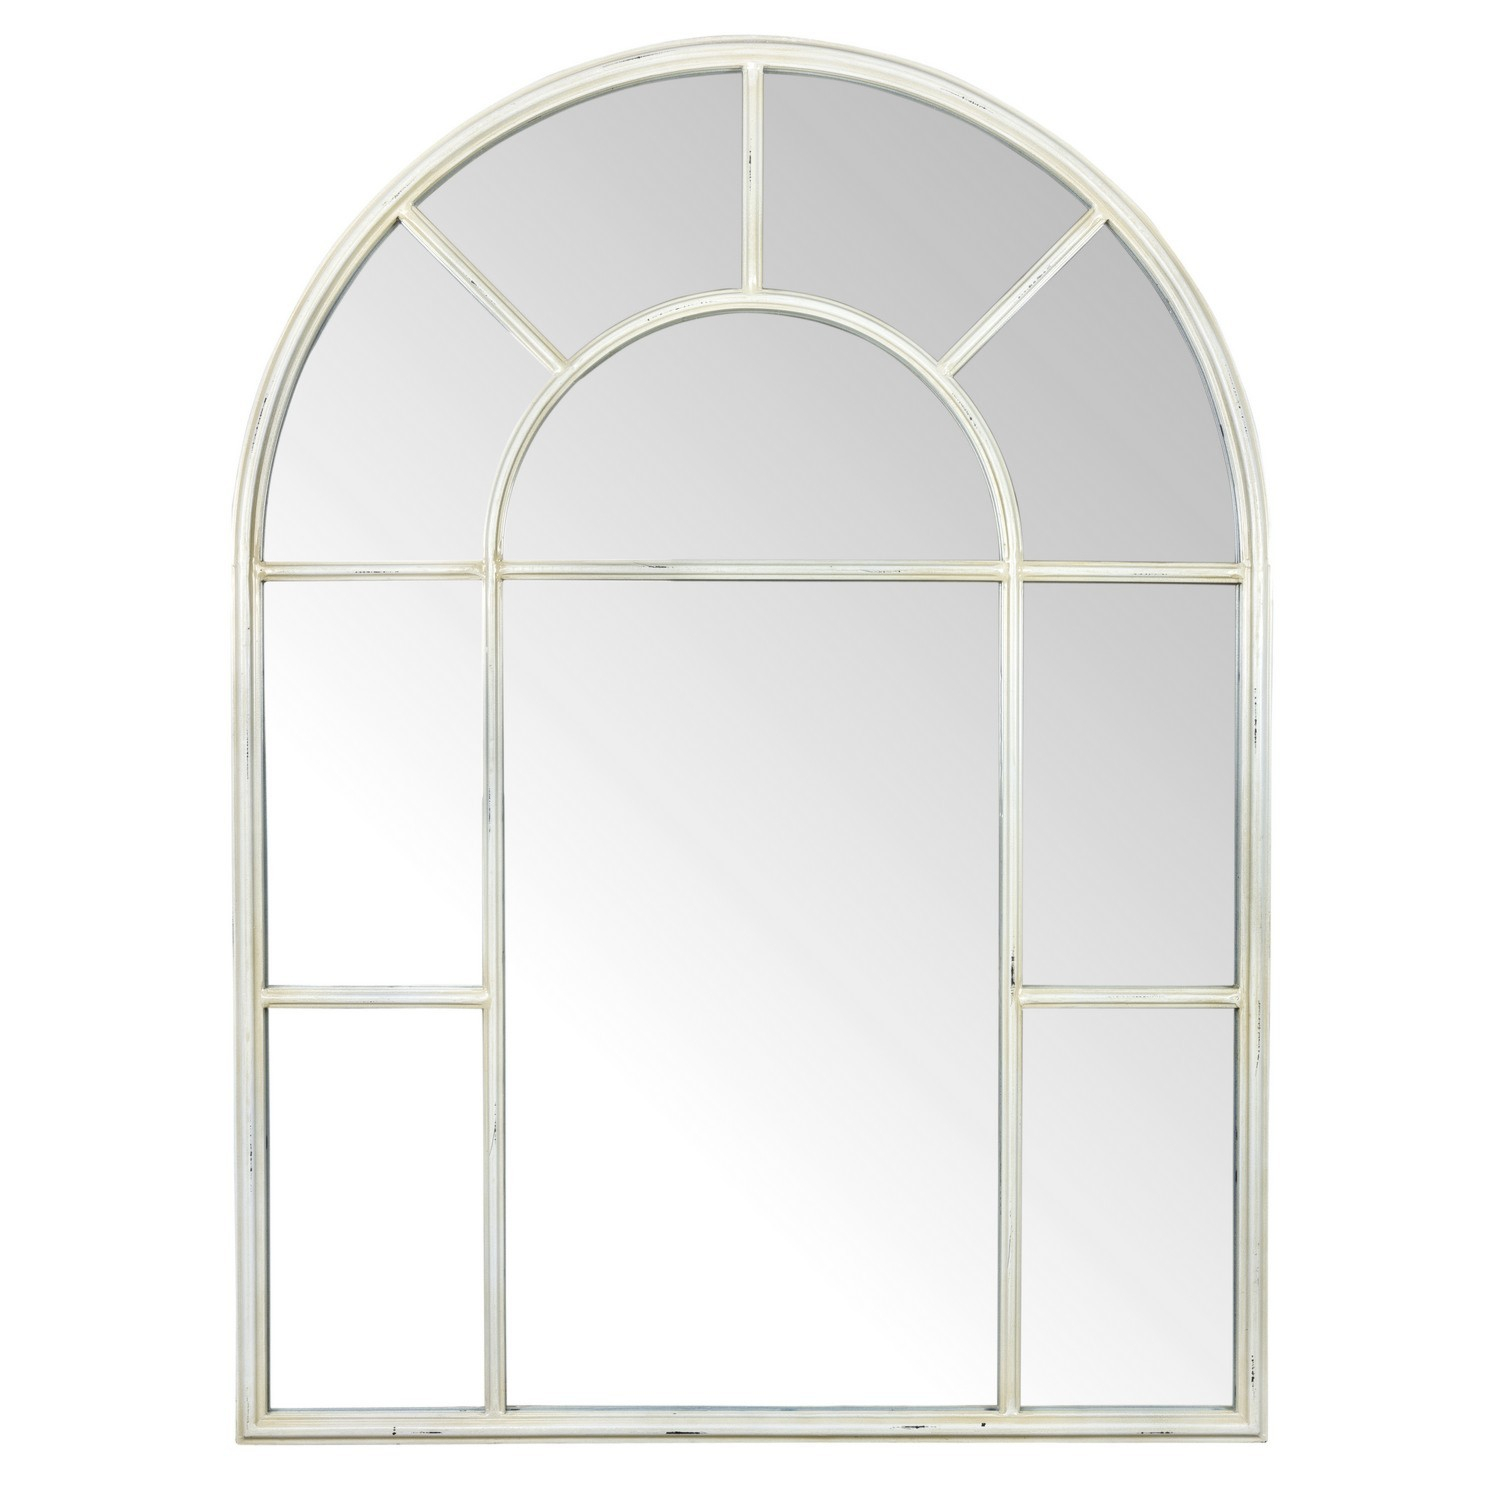 Ivory Arch Mirror Throughout Metal Arch Window Wall Mirrors (Image 10 of 20)